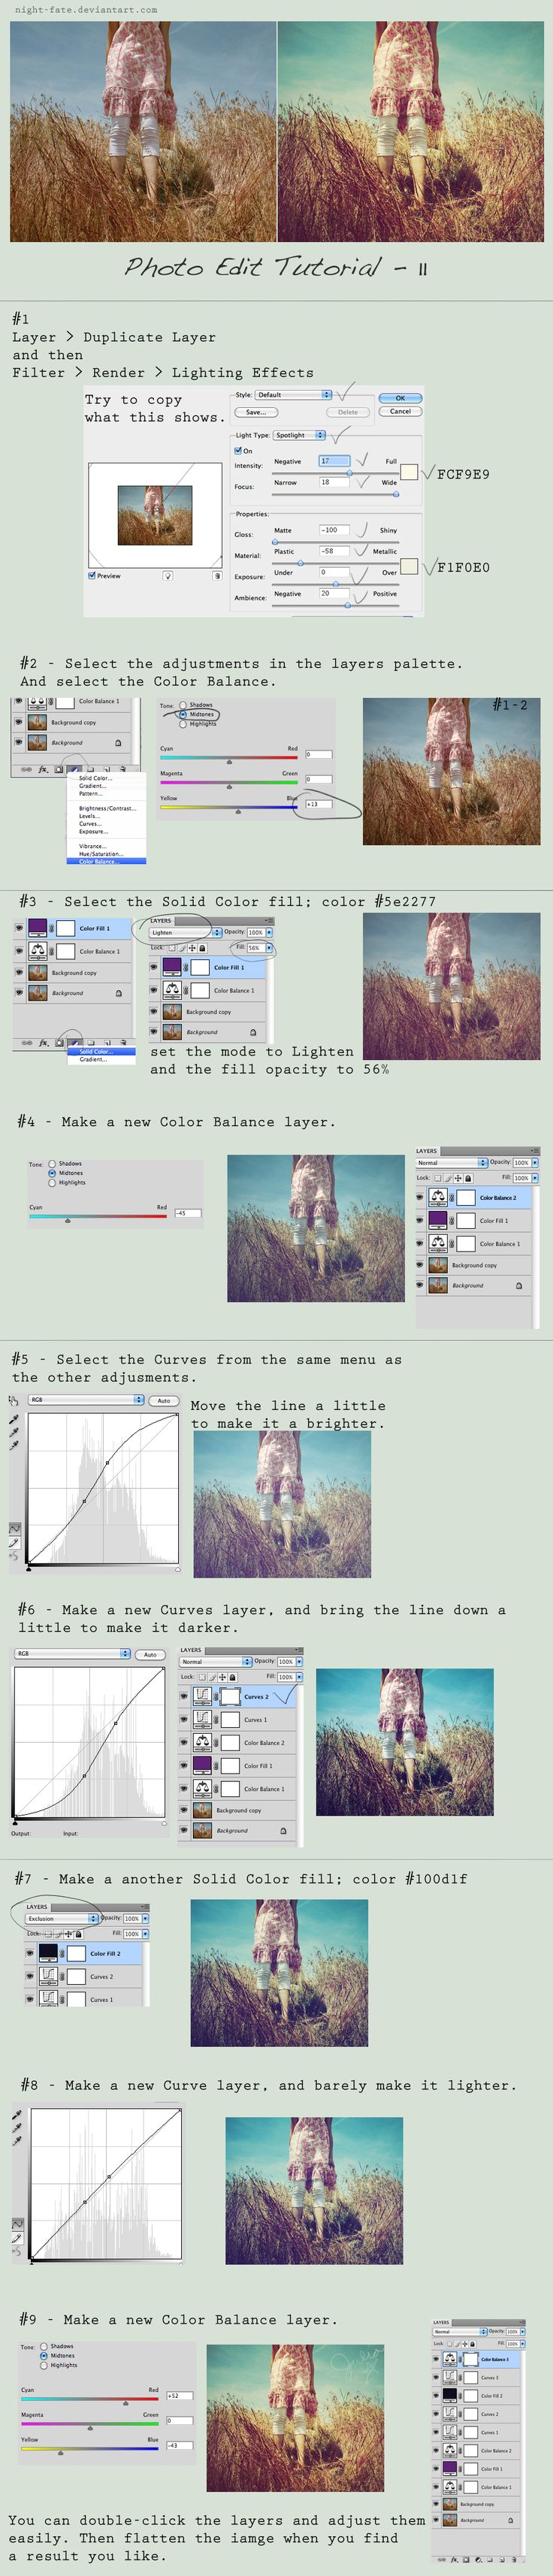 Photo Edit Tutorial